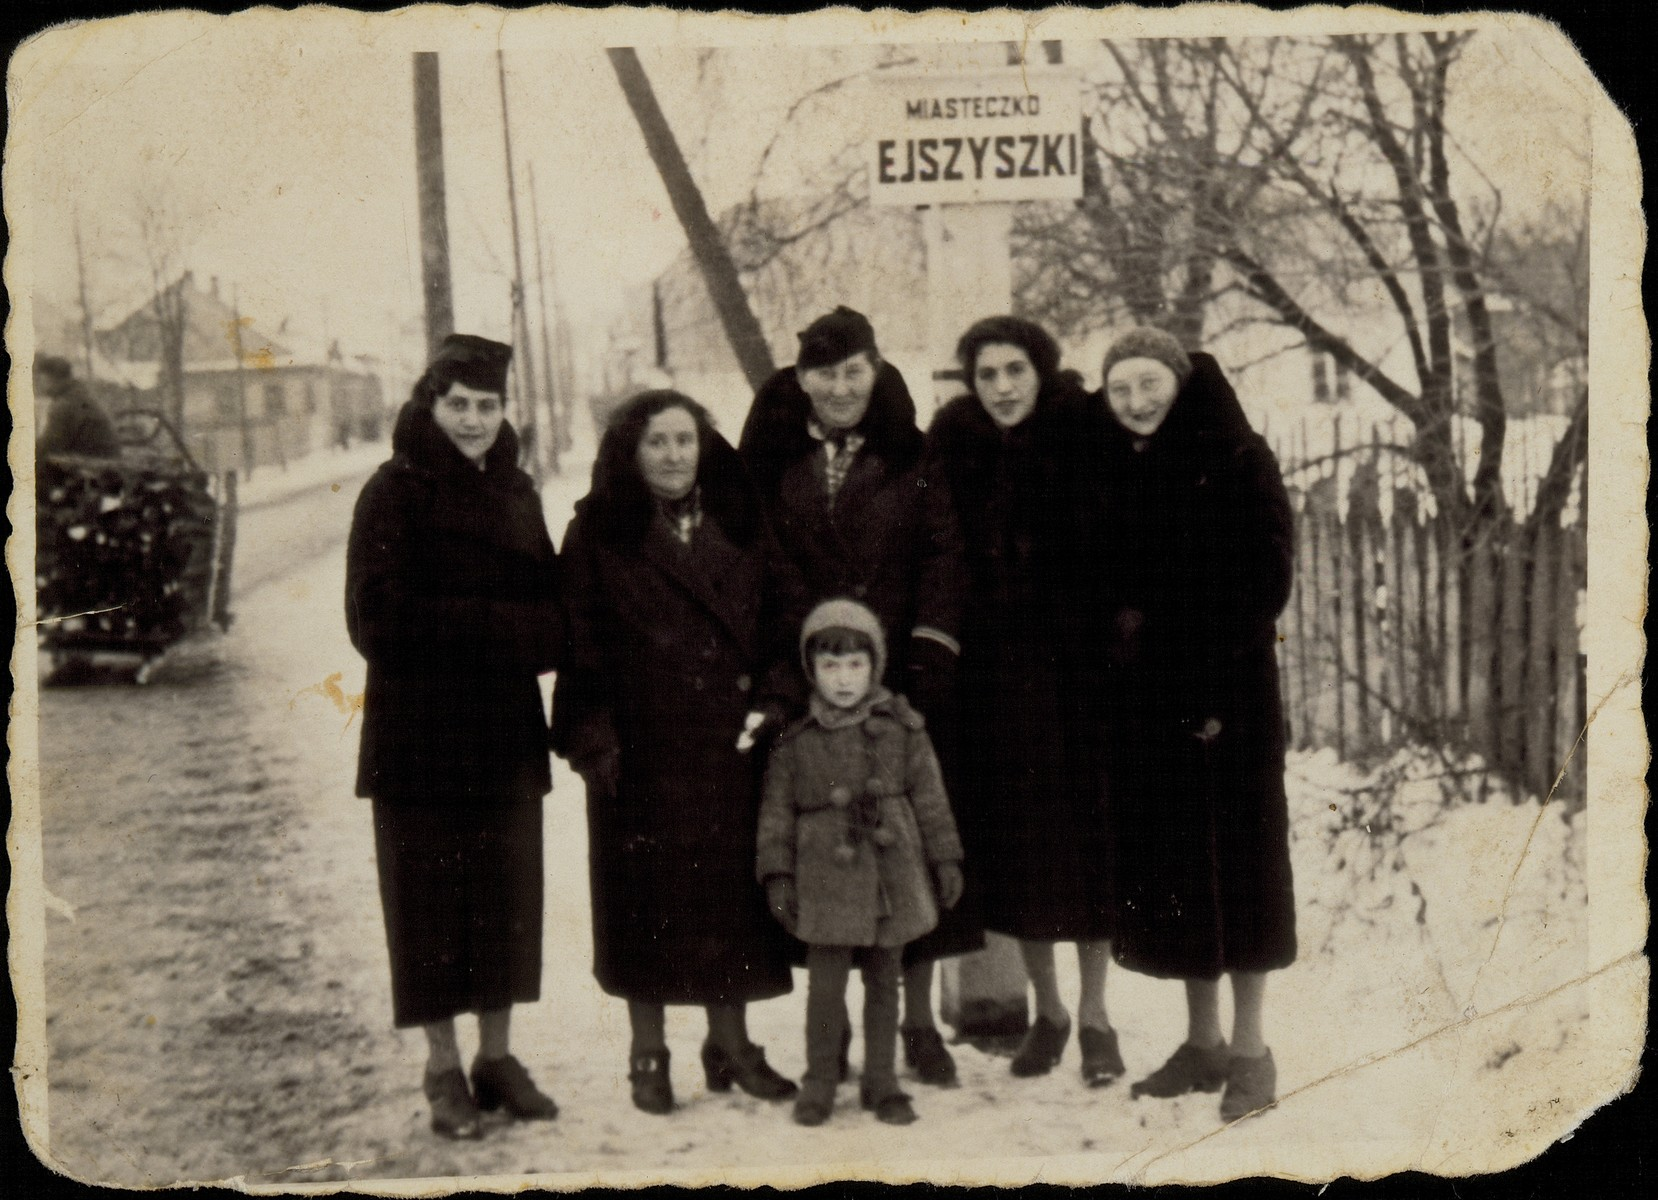 A group of Jewish women pose with a young girl at the entrance to Eisiskes.  Pictured from right to left are: Zipporah (Katz) Sonenson, Masha Michalowski, Alte Katz, Maite Gurewitch and Miriam Sonenson.  Standing in front of them is Shula Sonenson, the daughter of Miriam.  Of those pictured only Masha Michalowski survived the war and its aftermath.